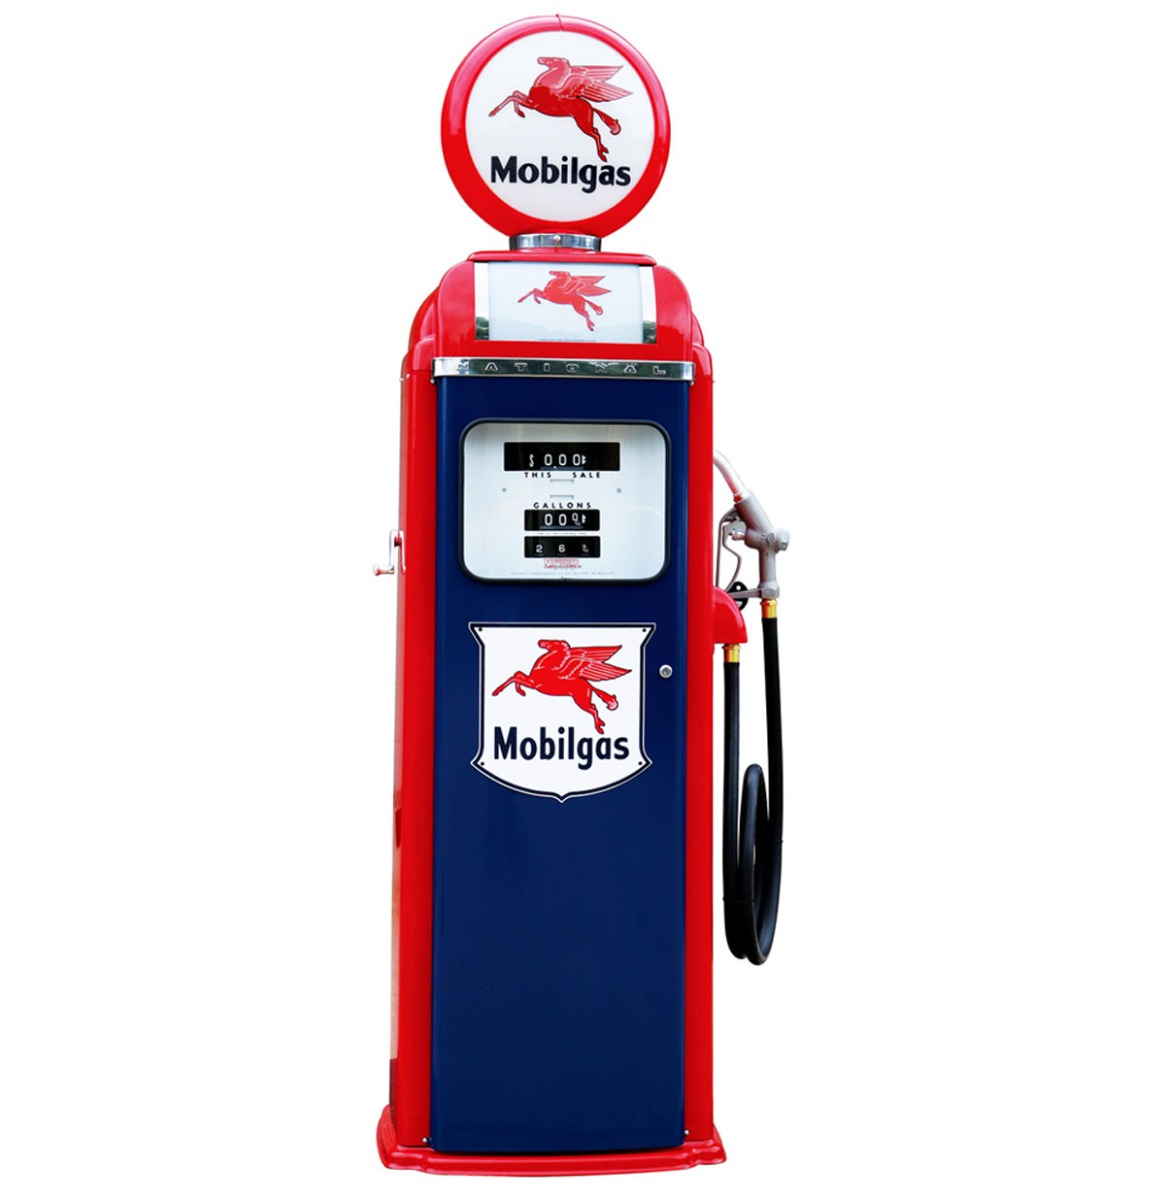 Mobilgas National 360 Computer Face Benzinepomp - Rood & Blauw - Reproductie